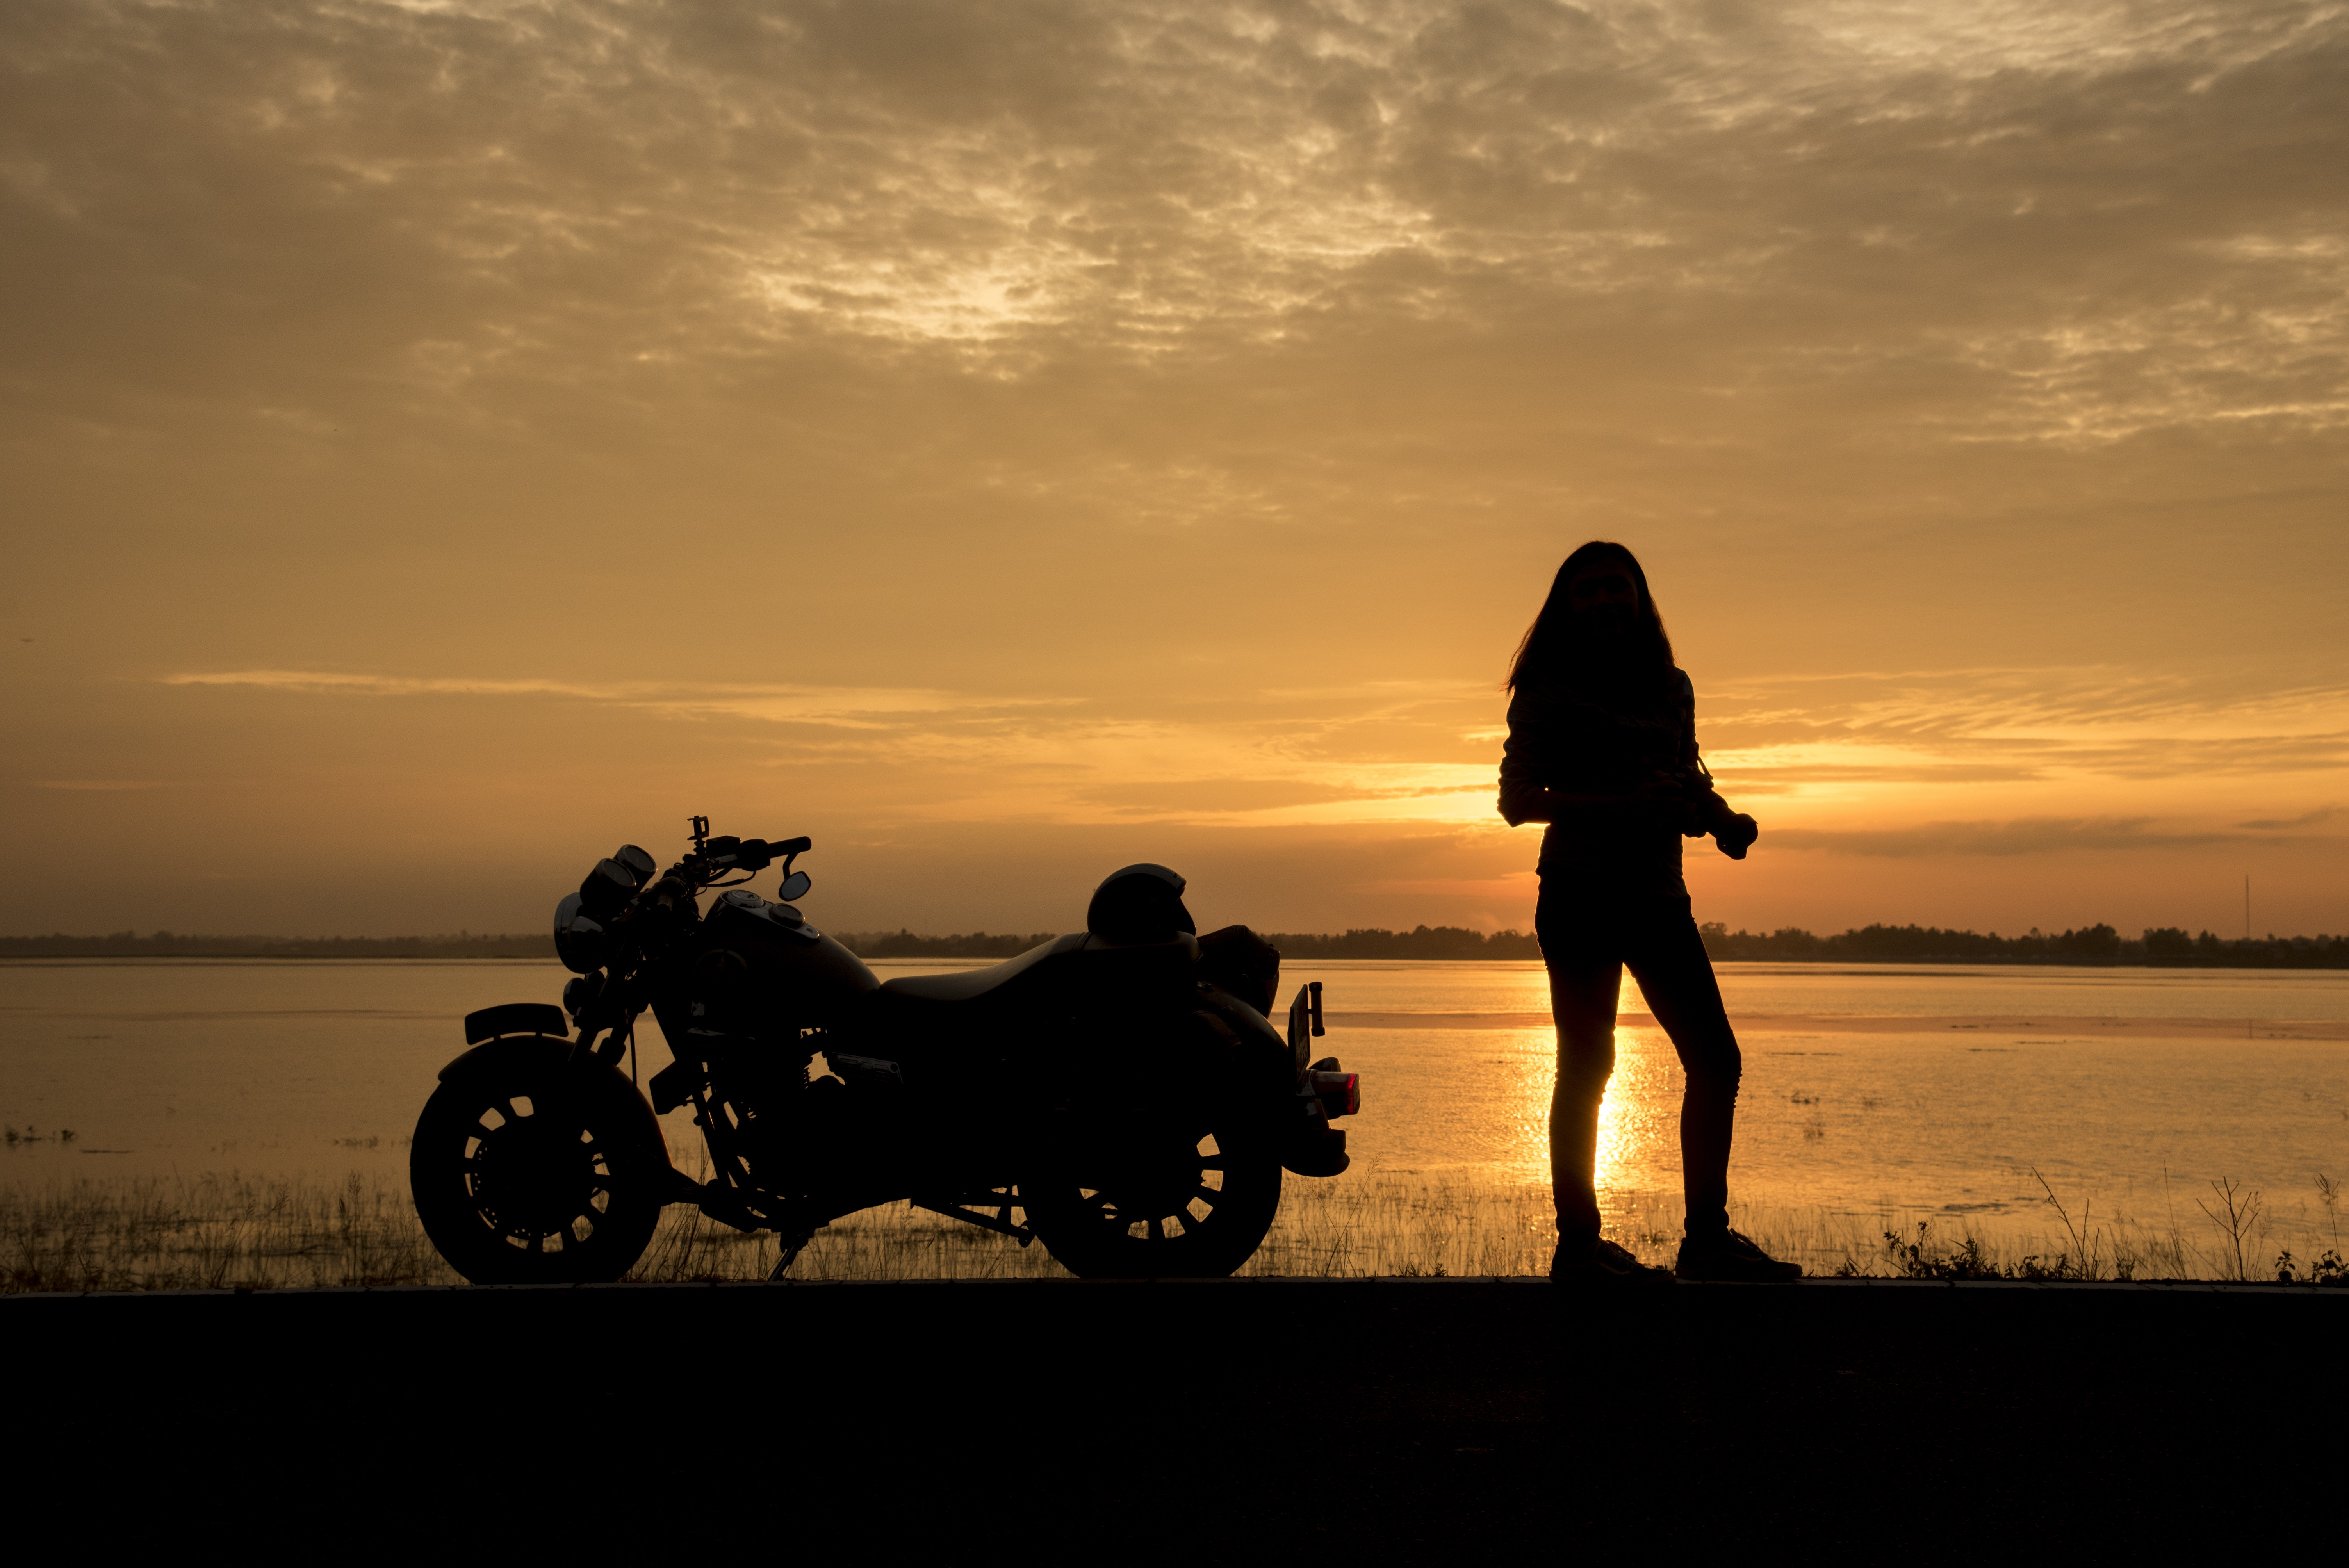 Motorcycle road trip planning